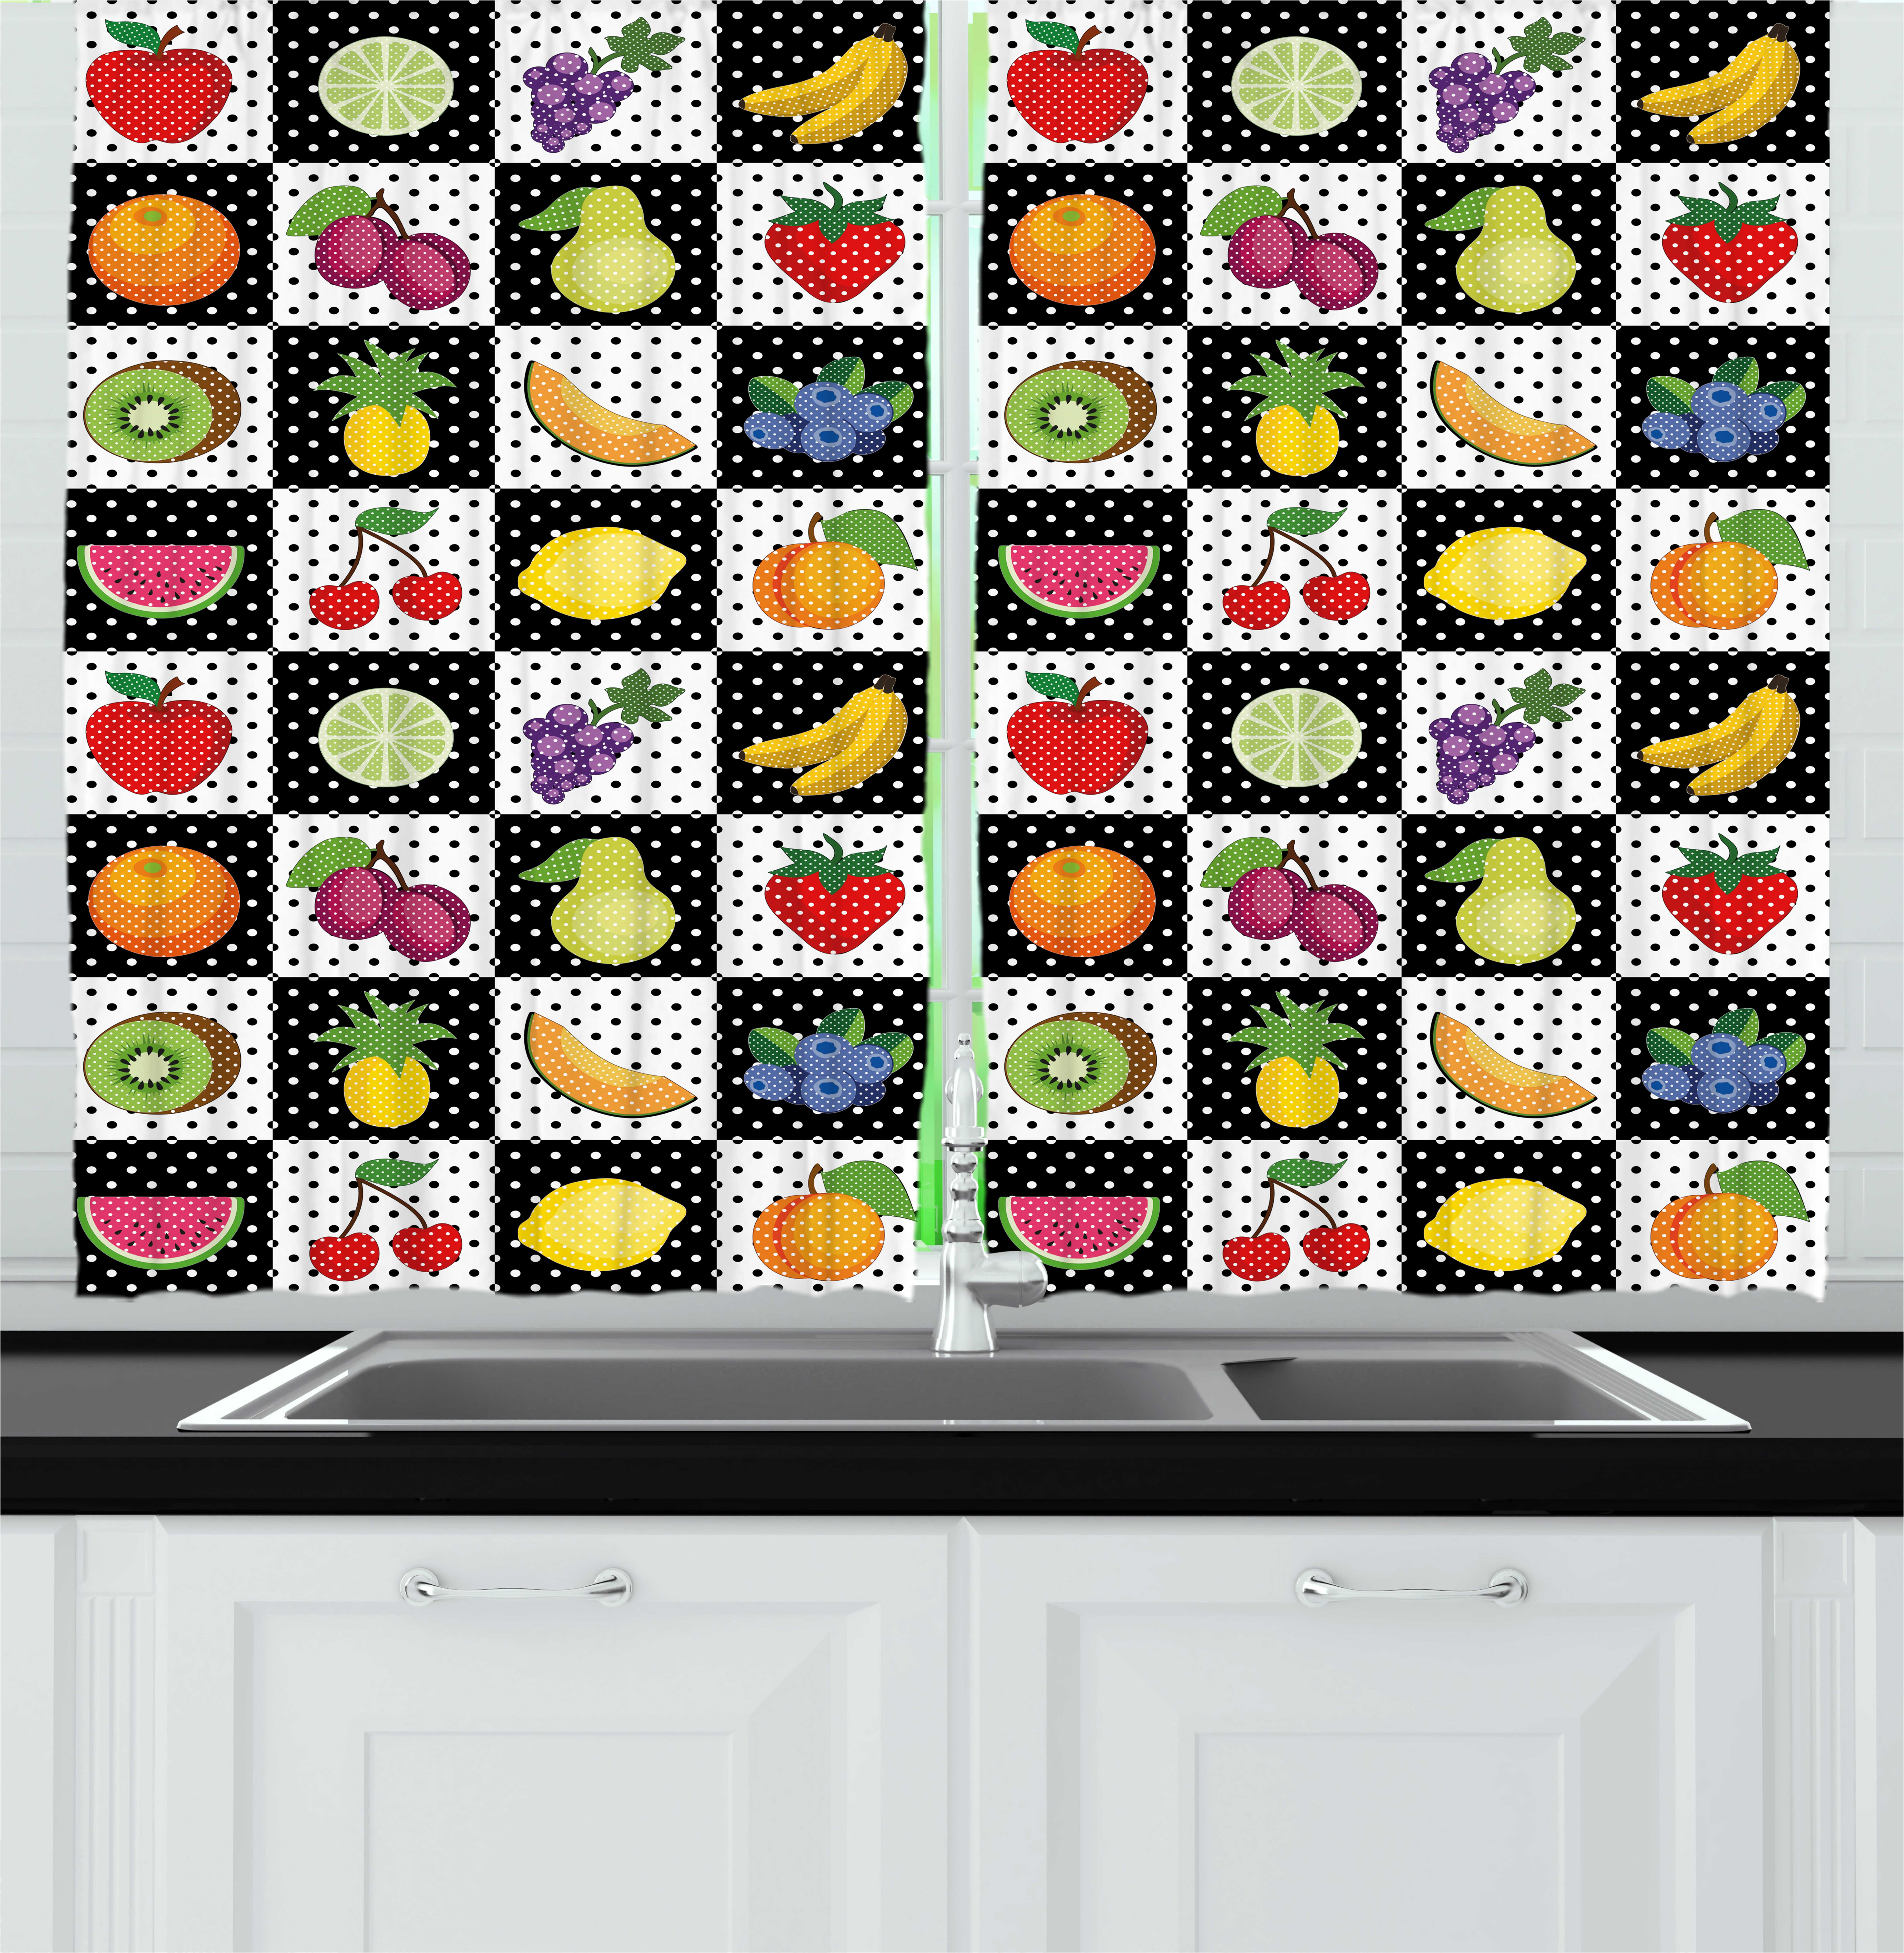 Black and White Curtains 2 Panels Set, Kitchen Fruits and Vegetables Nature with Dots Chess Squares Art Design, Window Drapes for Living Room Bedroom, 55W X 39L Inches, Multicolor, by Ambesonne